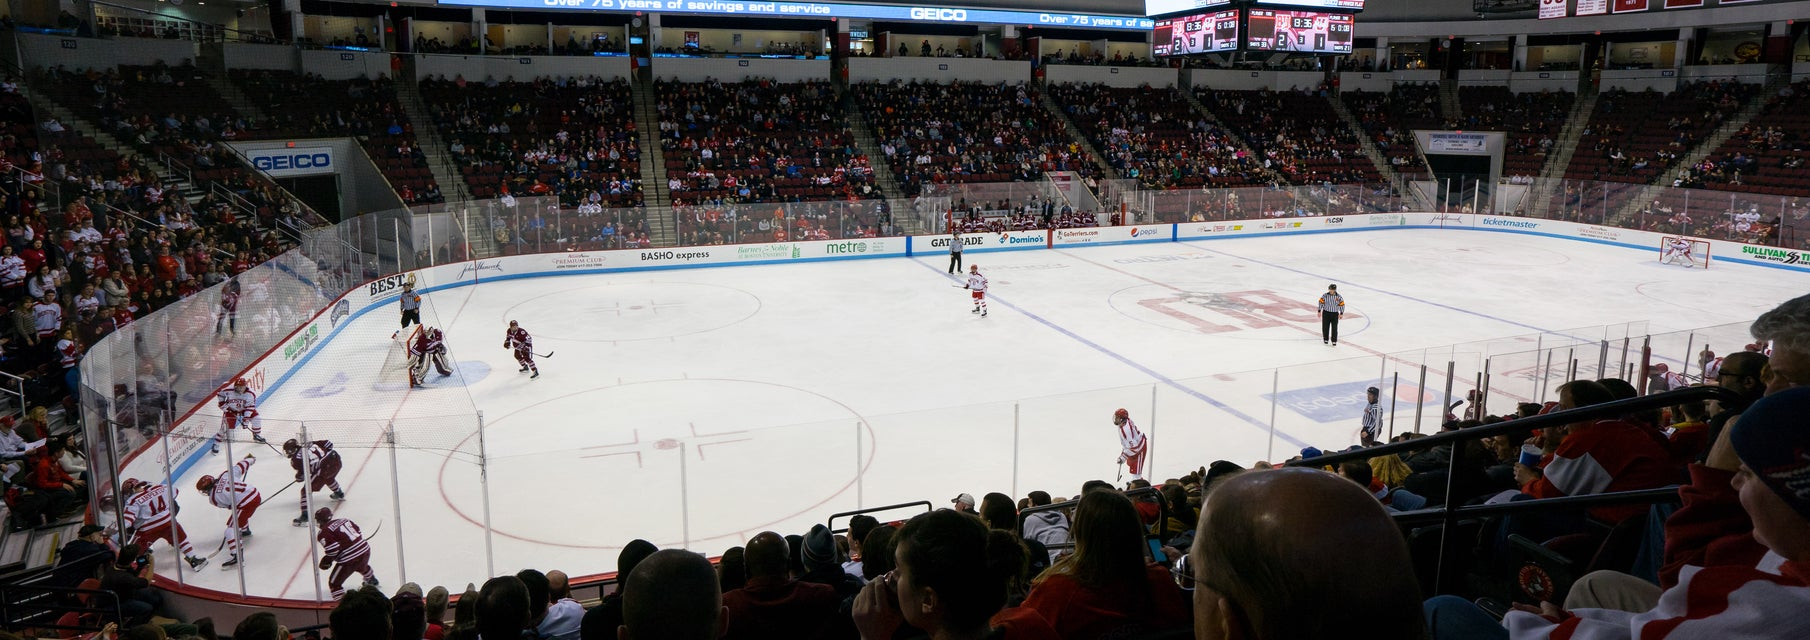 Seat view from Arena